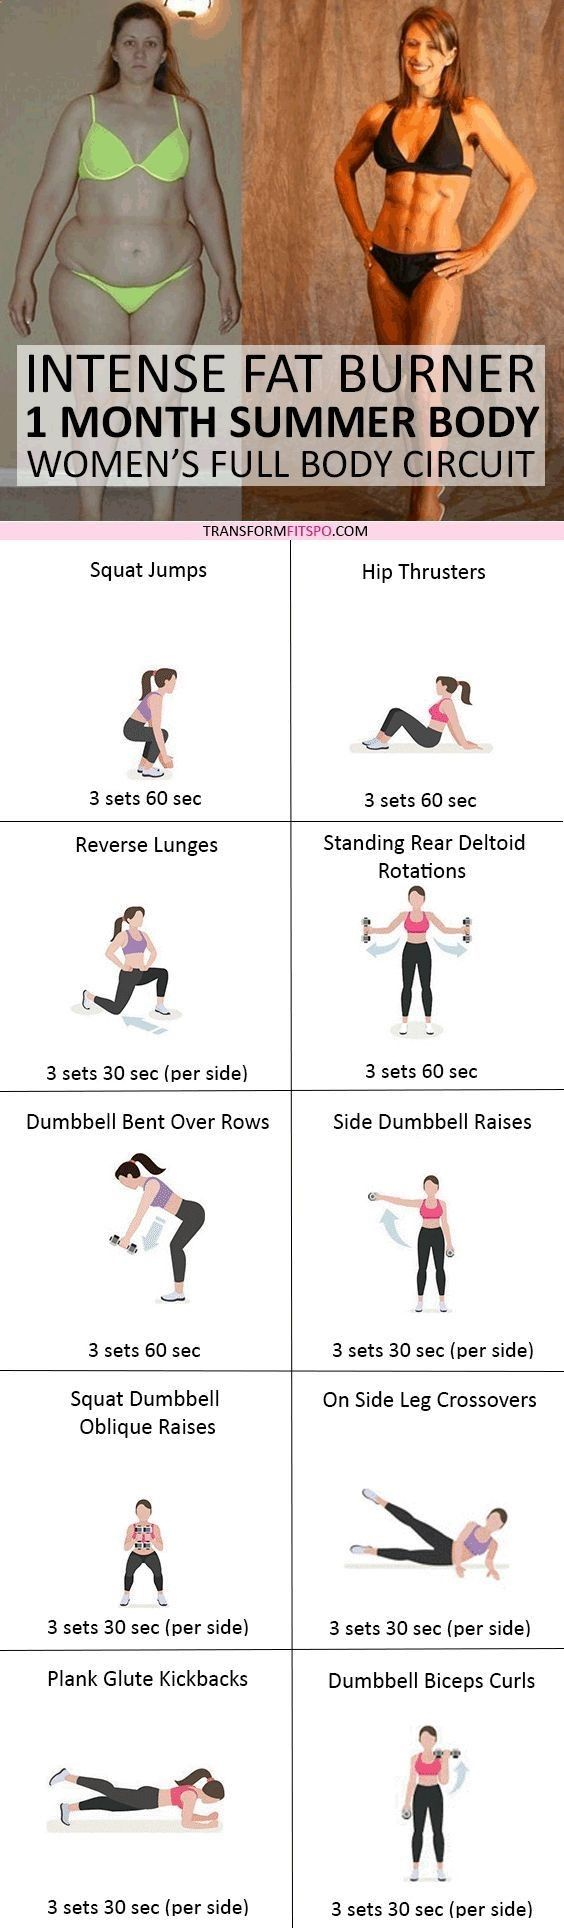 Yoga-Get Your Sexiest Body Ever #womensworkout #workout #femalefitness Repin and share if this workout melted your fat! Click the pin for the full workout. Get your sexiest body ever without,crunches,cardio,or ever setting foot in a gym